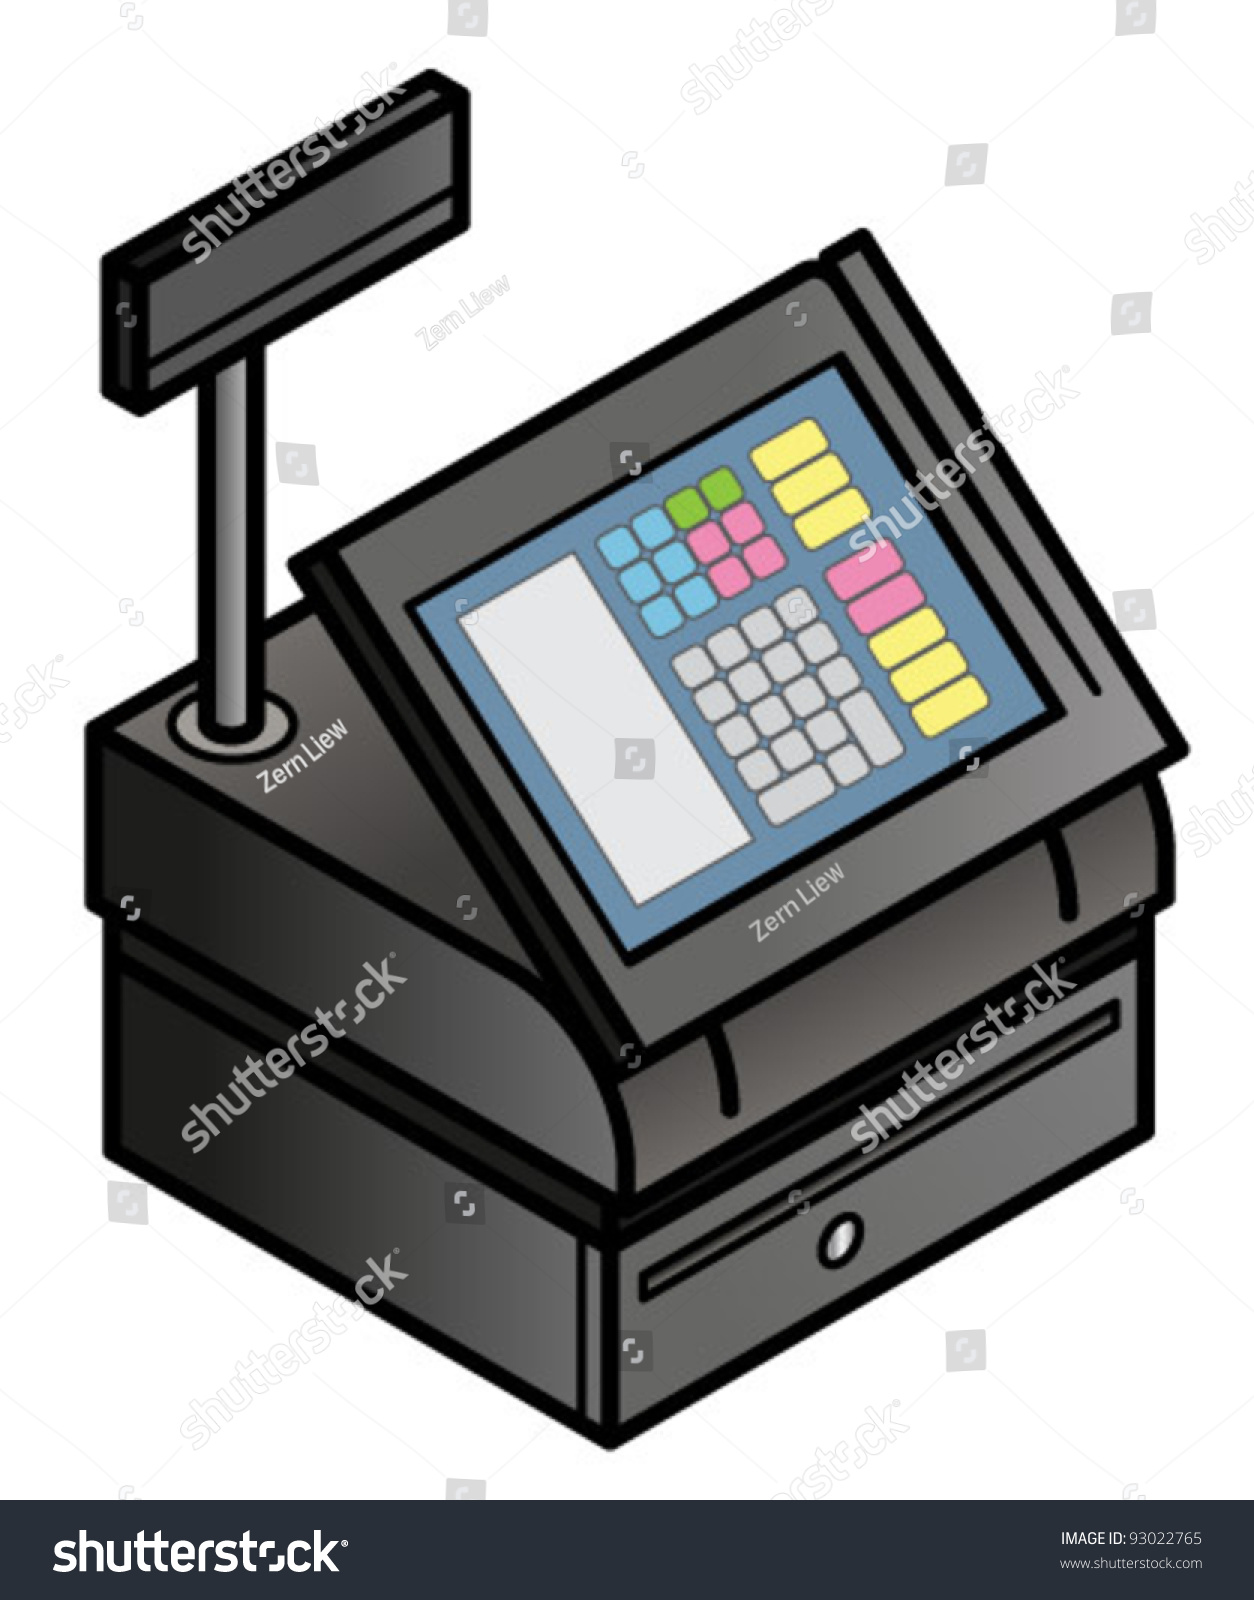 Touchscreen Point Sale Cash Register Builtin Stock Vector. Ist Time Buyer Mortgages Ivf Funding Programs. Fernando Alonso Divorce Intuit Tucson Arizona. Timewarner Business Cable Bed Bugs Boston Ma. Technology In Health Care System. Children Available For Adoption In Washington State. Florida Replacement Windows A Brighter Smile. Bank Account Software Free Download. Apply American Express Card One Nevada Bank